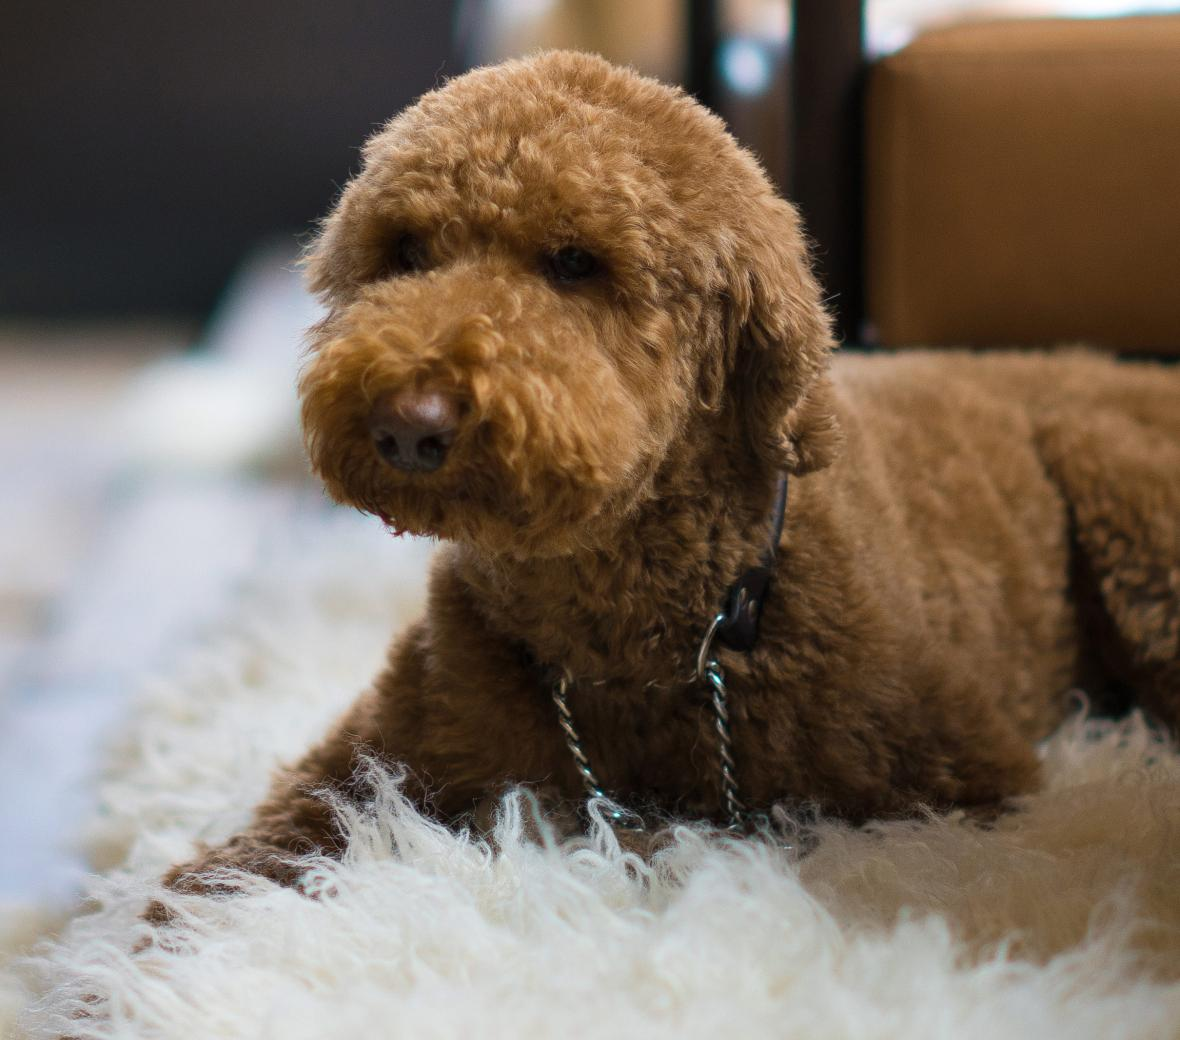 Poodle on sheepskin rug